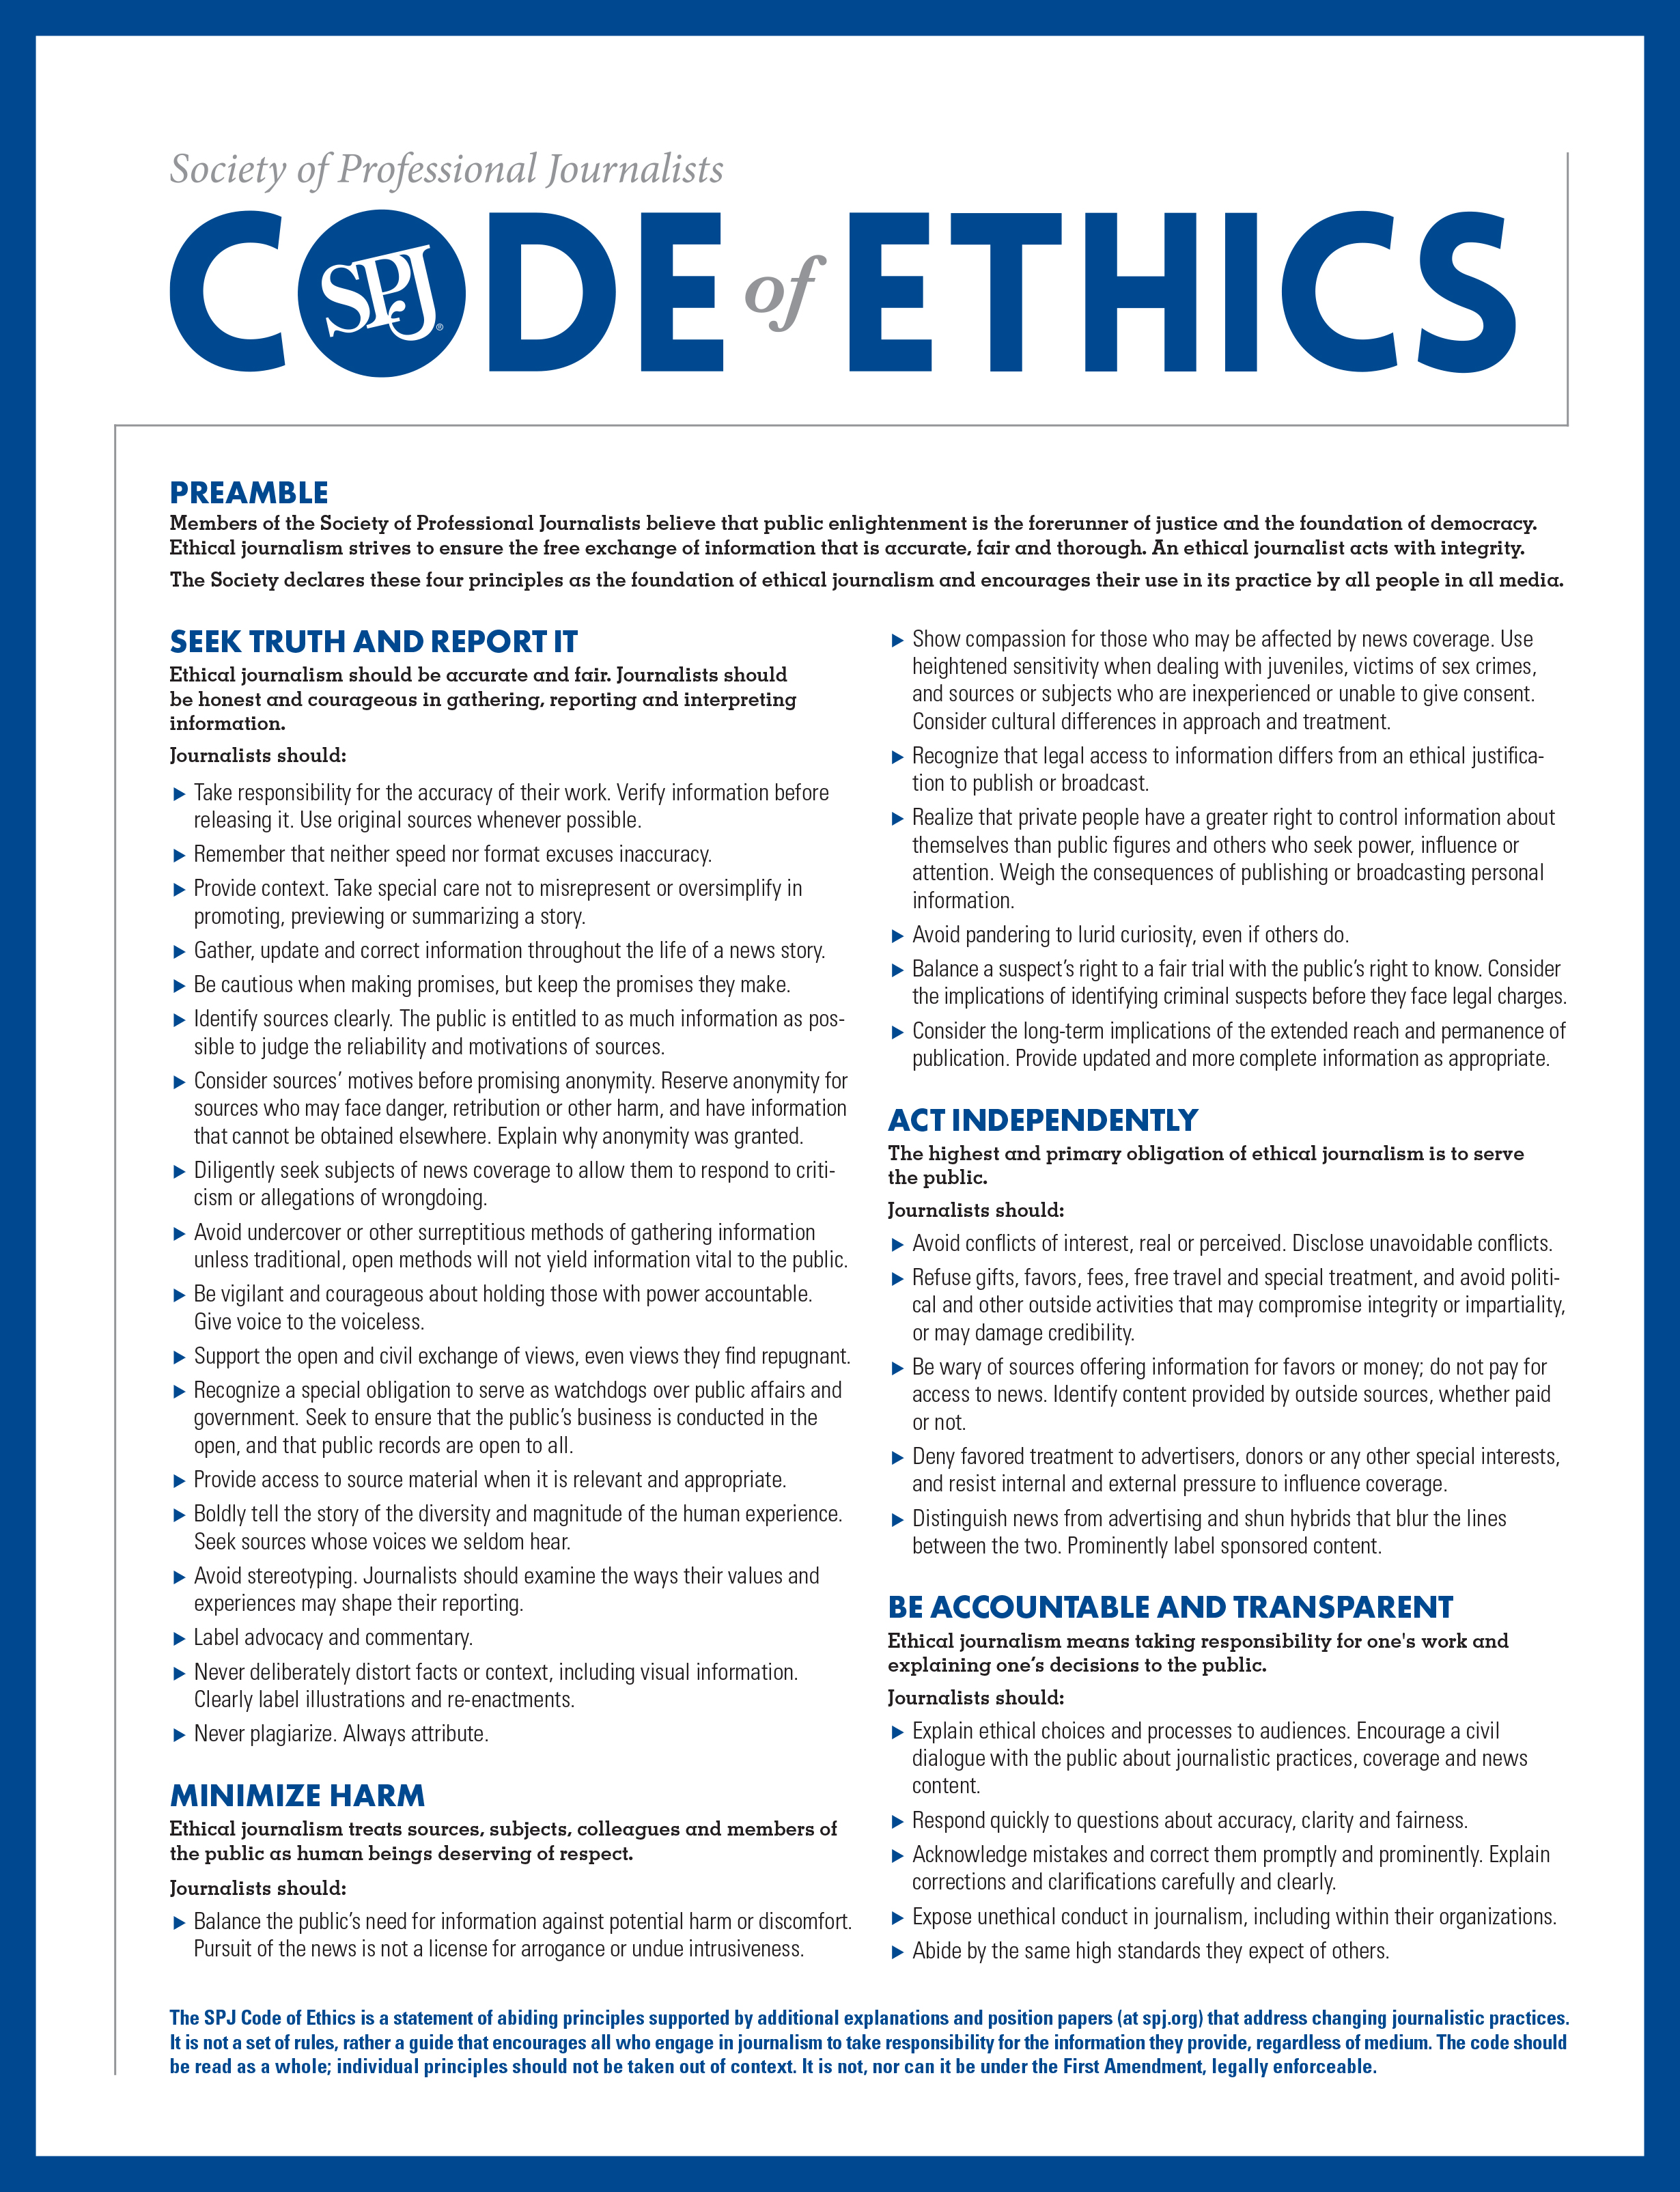 examining the professional code of conduct nursing essay Been slow in changing the demographics of the nursing profession  need to  examine practices and traditions that favored some and excluded others,   nurses are bound by an ethical code of conduct (ana, 2015) that calls for the  inherent.